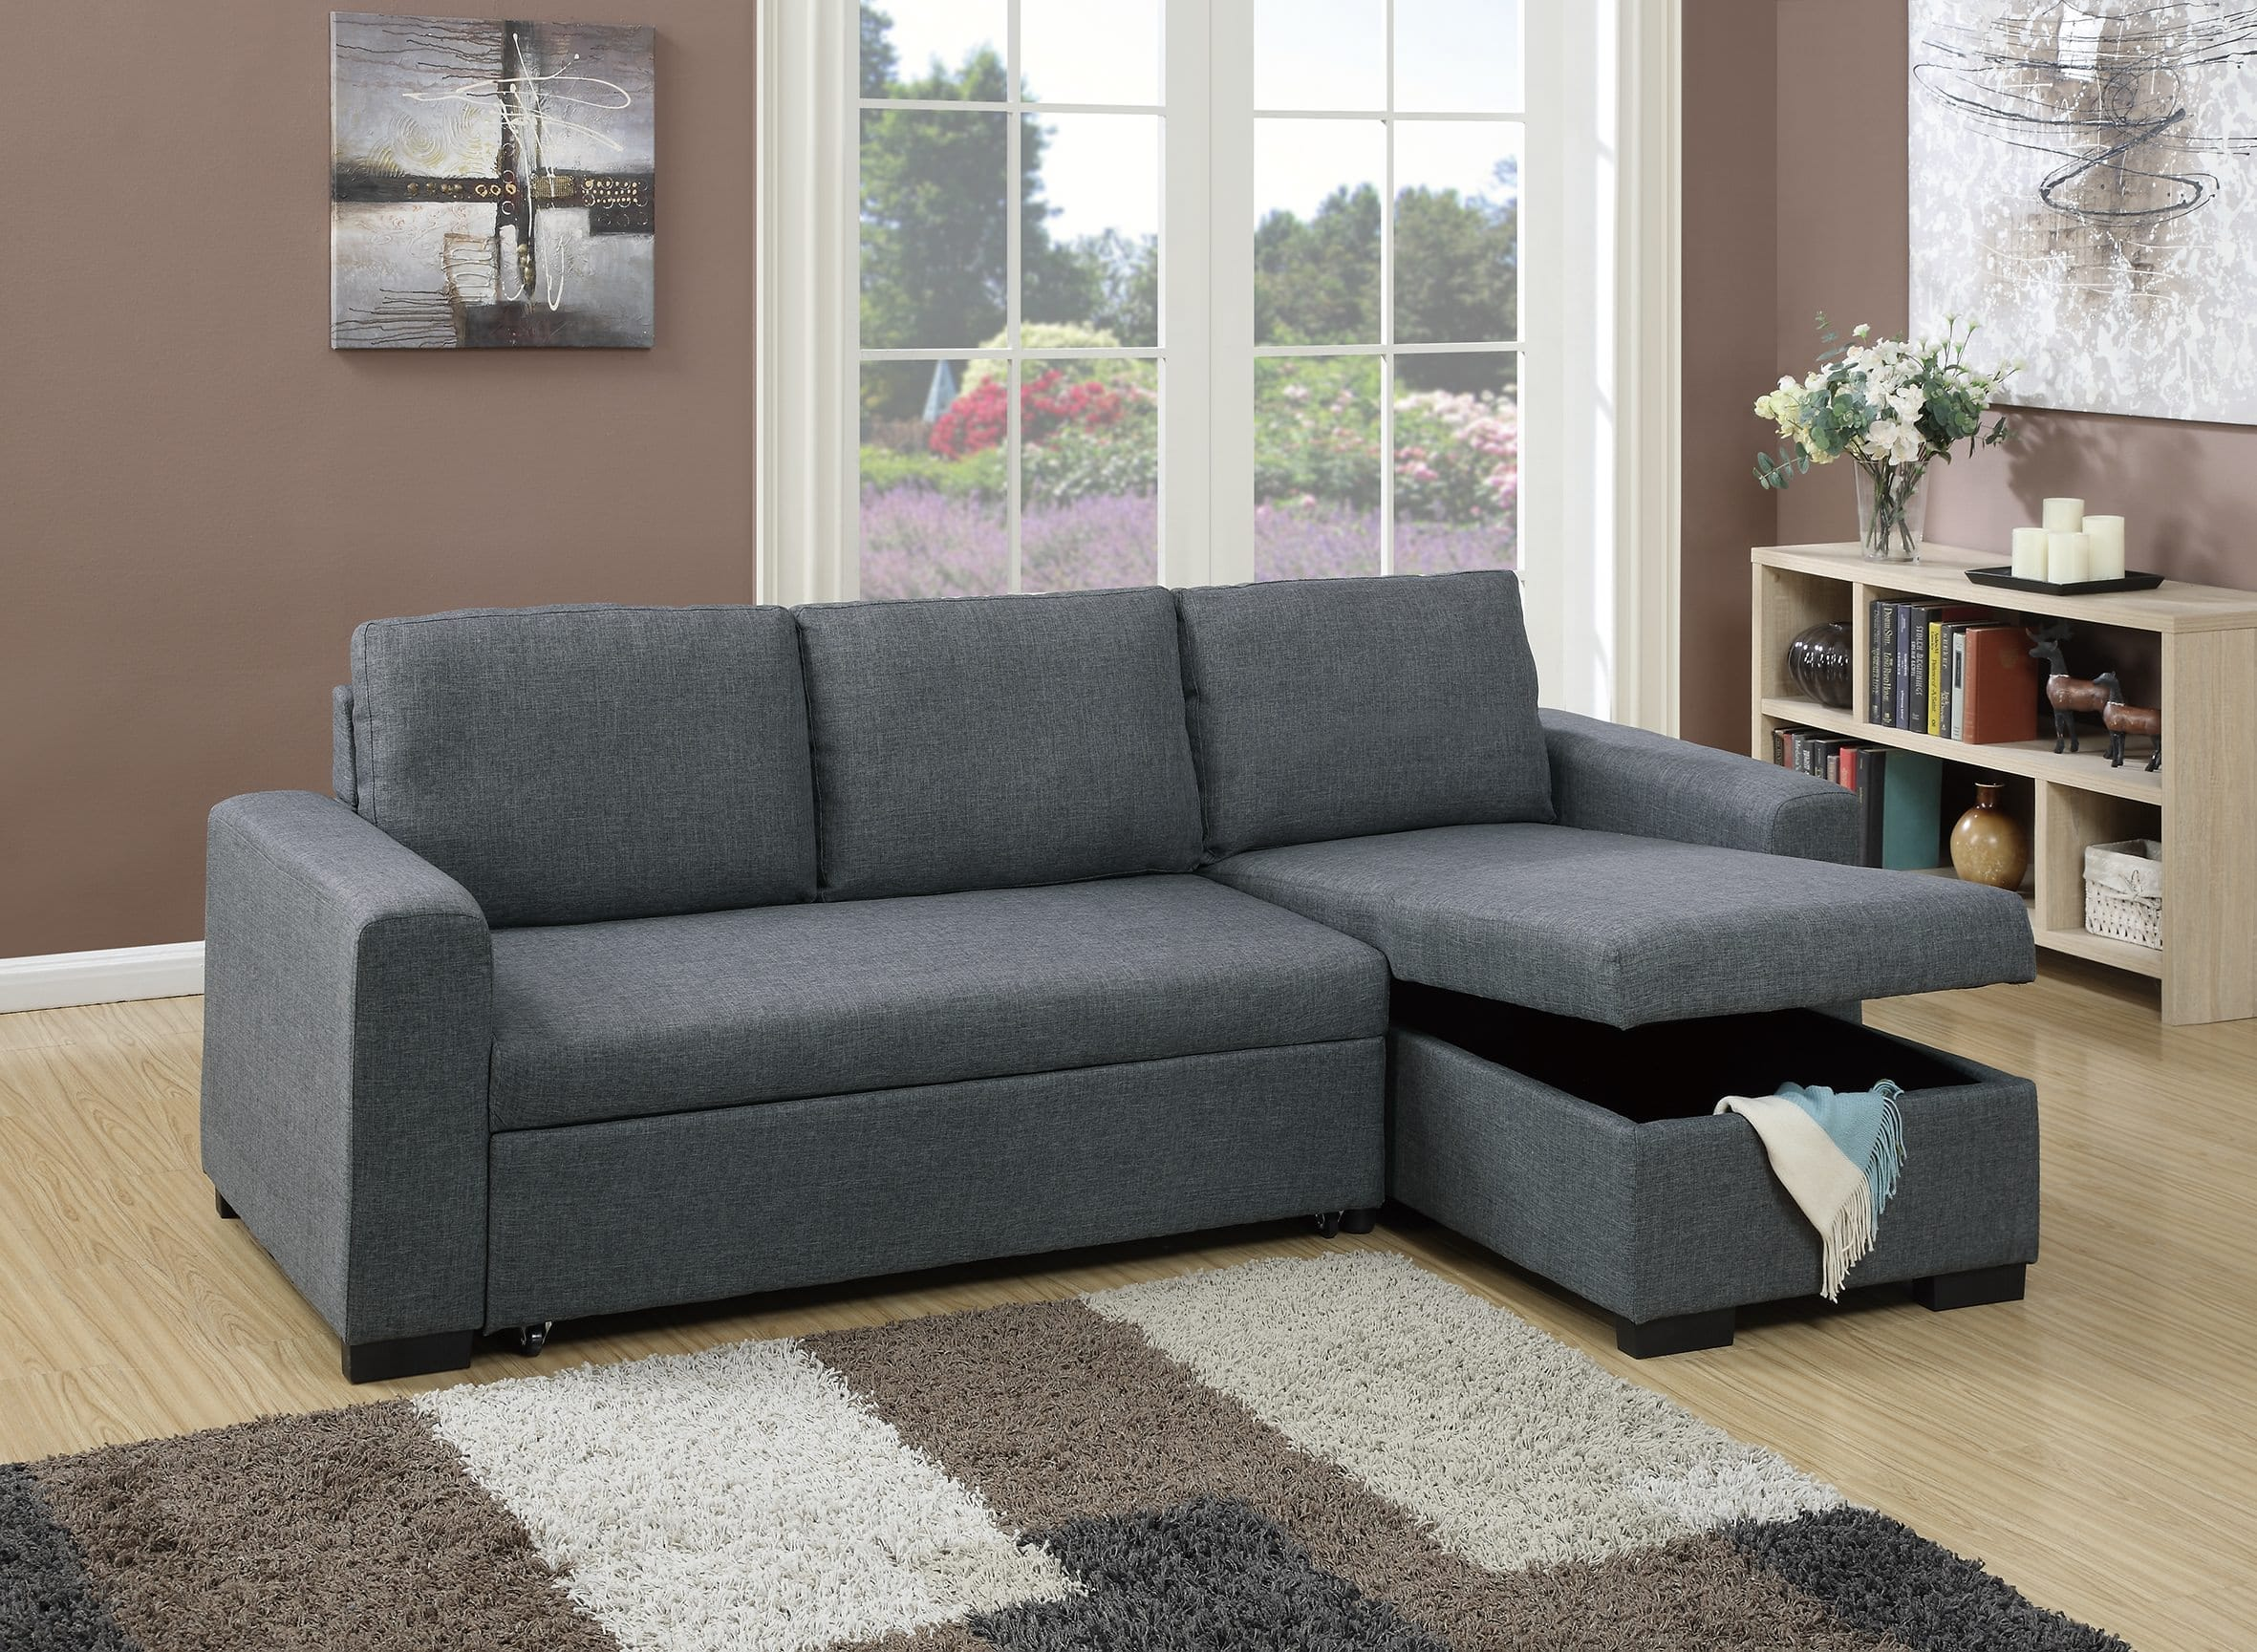 F6931 Blue Gray Convertible Sectional Sofa By Poundex (Poundex Associates  Corporation)